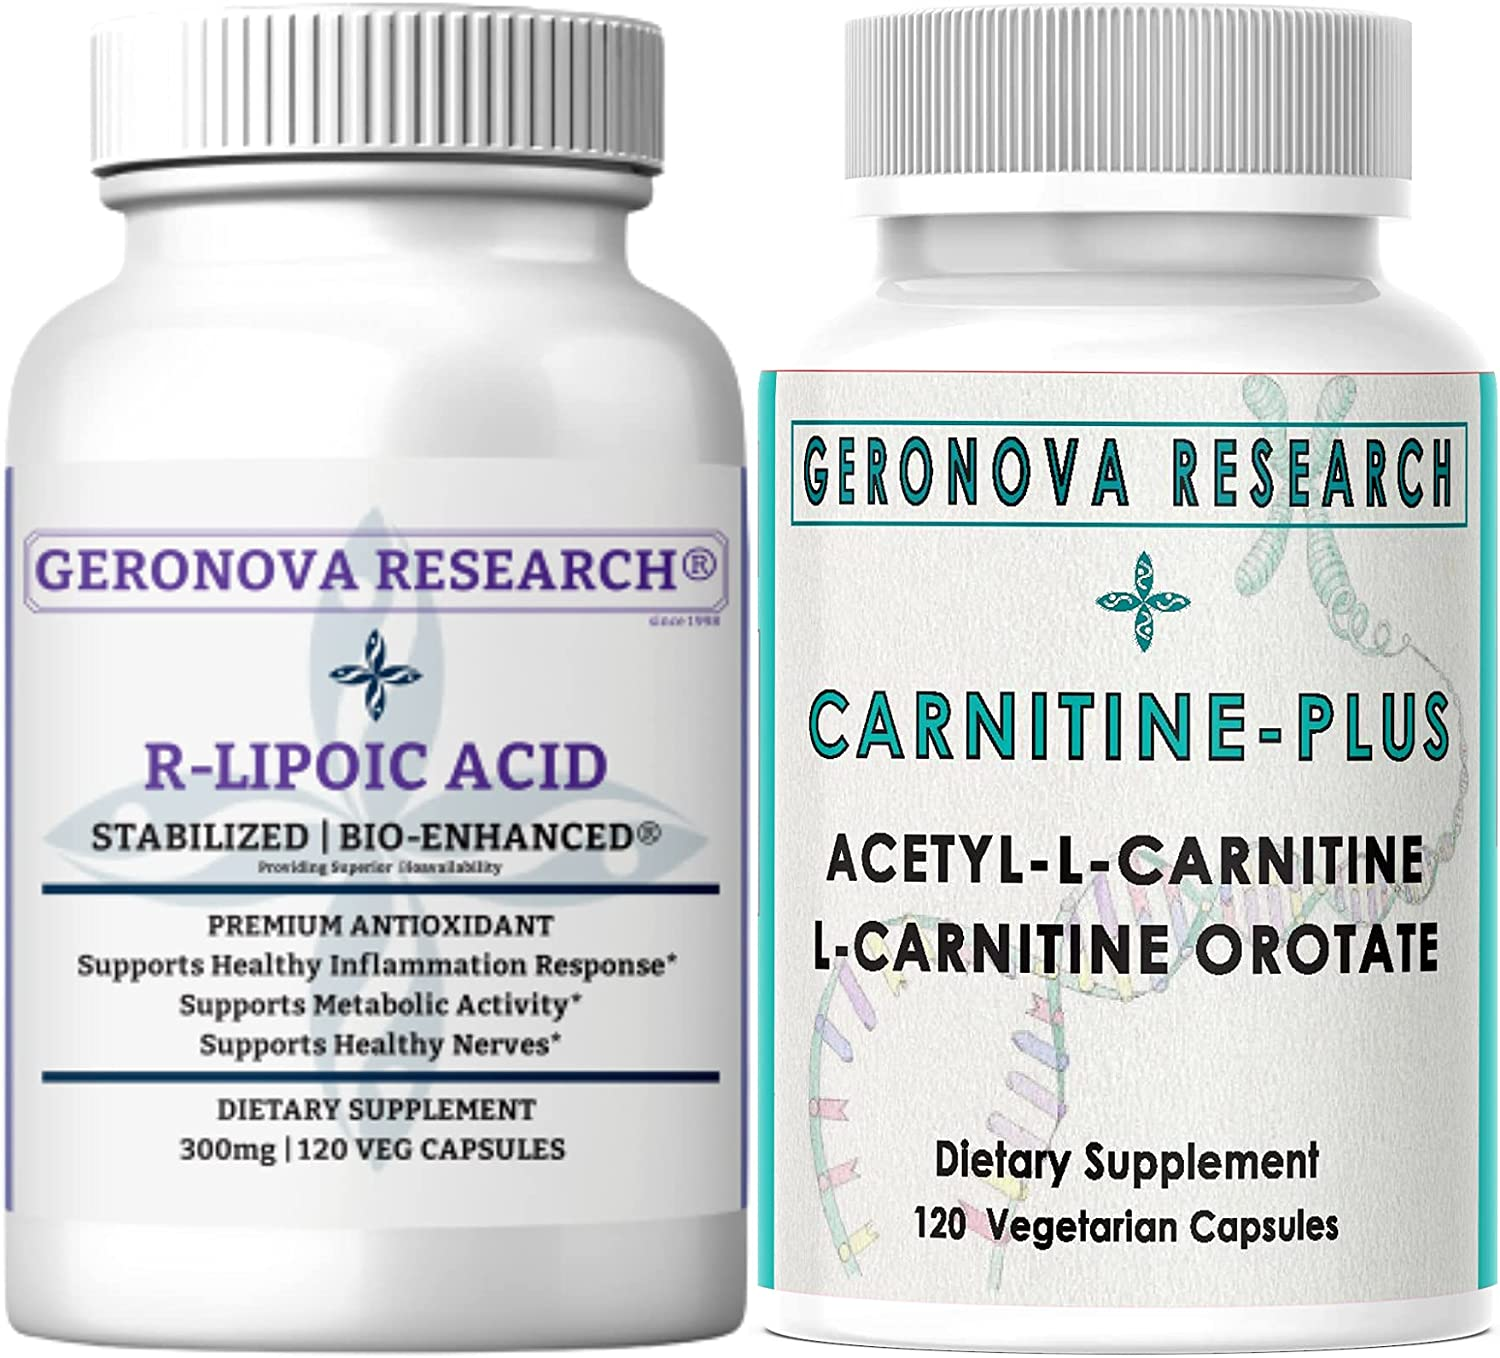 GeroNova Research Stabilized R-Lipoic Acid Max 46% OFF Caps Carn New Orleans Mall 300mg 120